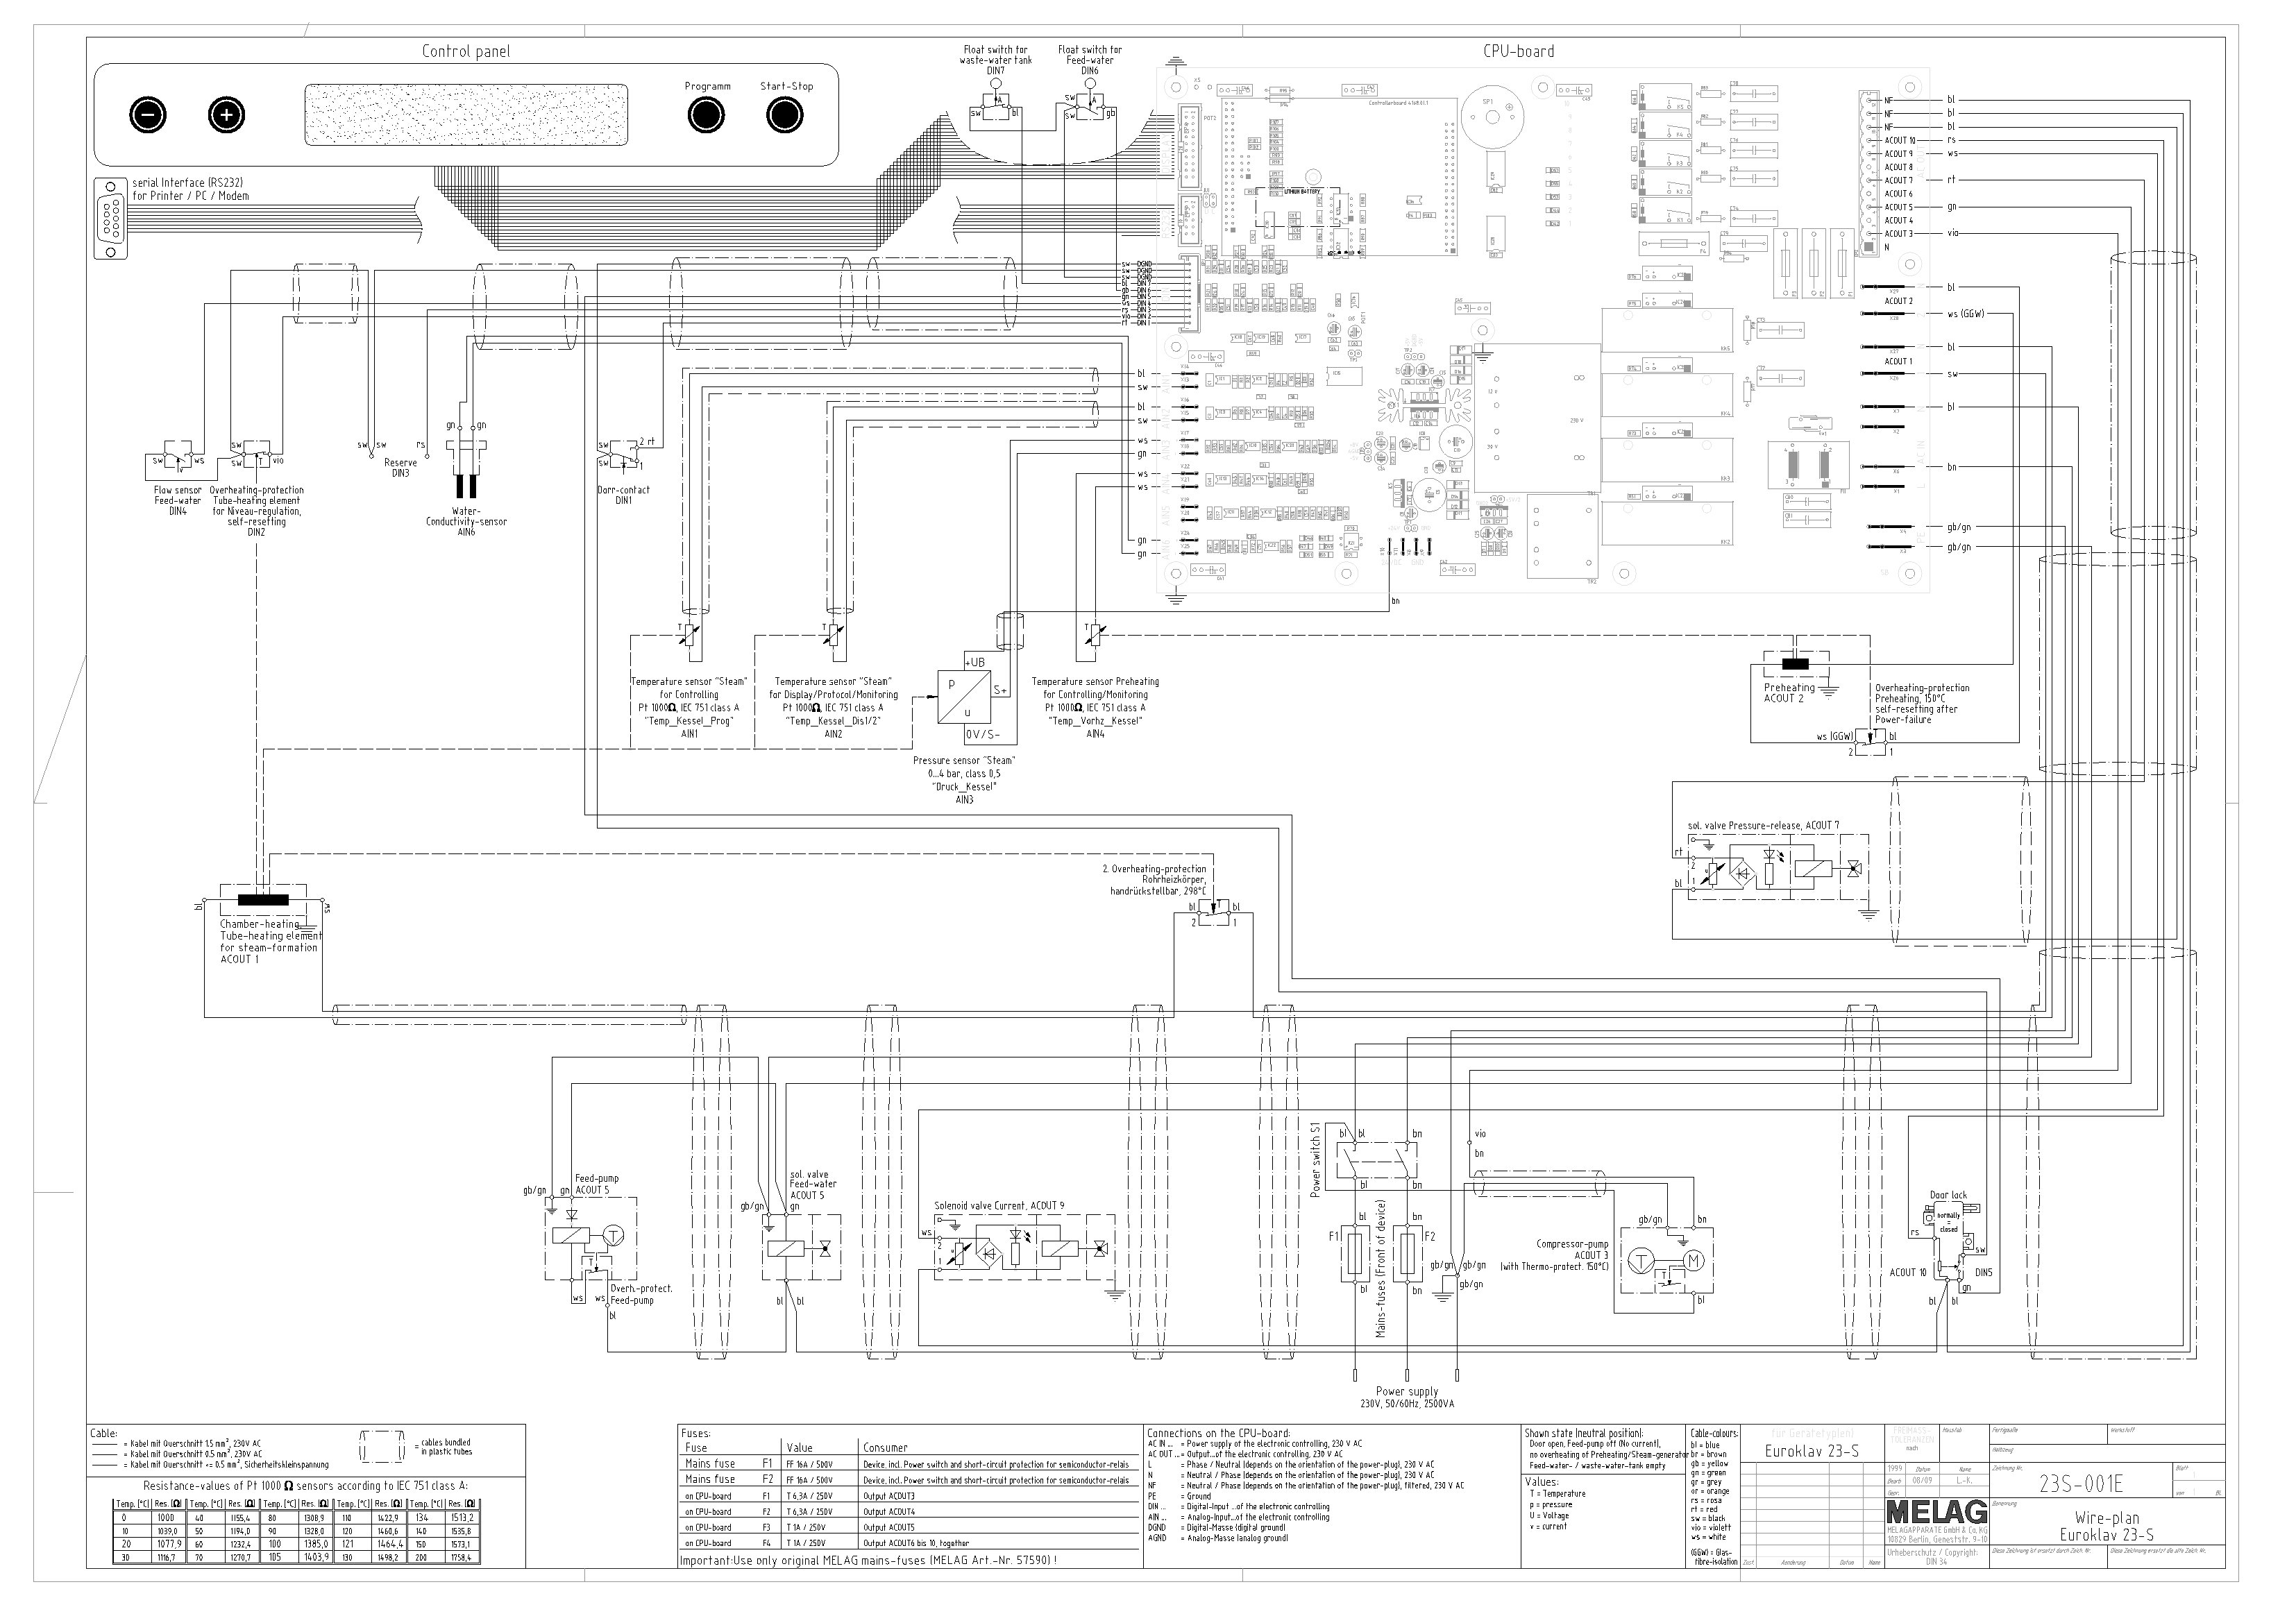 Melag_23 S_ _Wire_plan frank's autoclaves Light Switch Wiring Diagram at webbmarketing.co